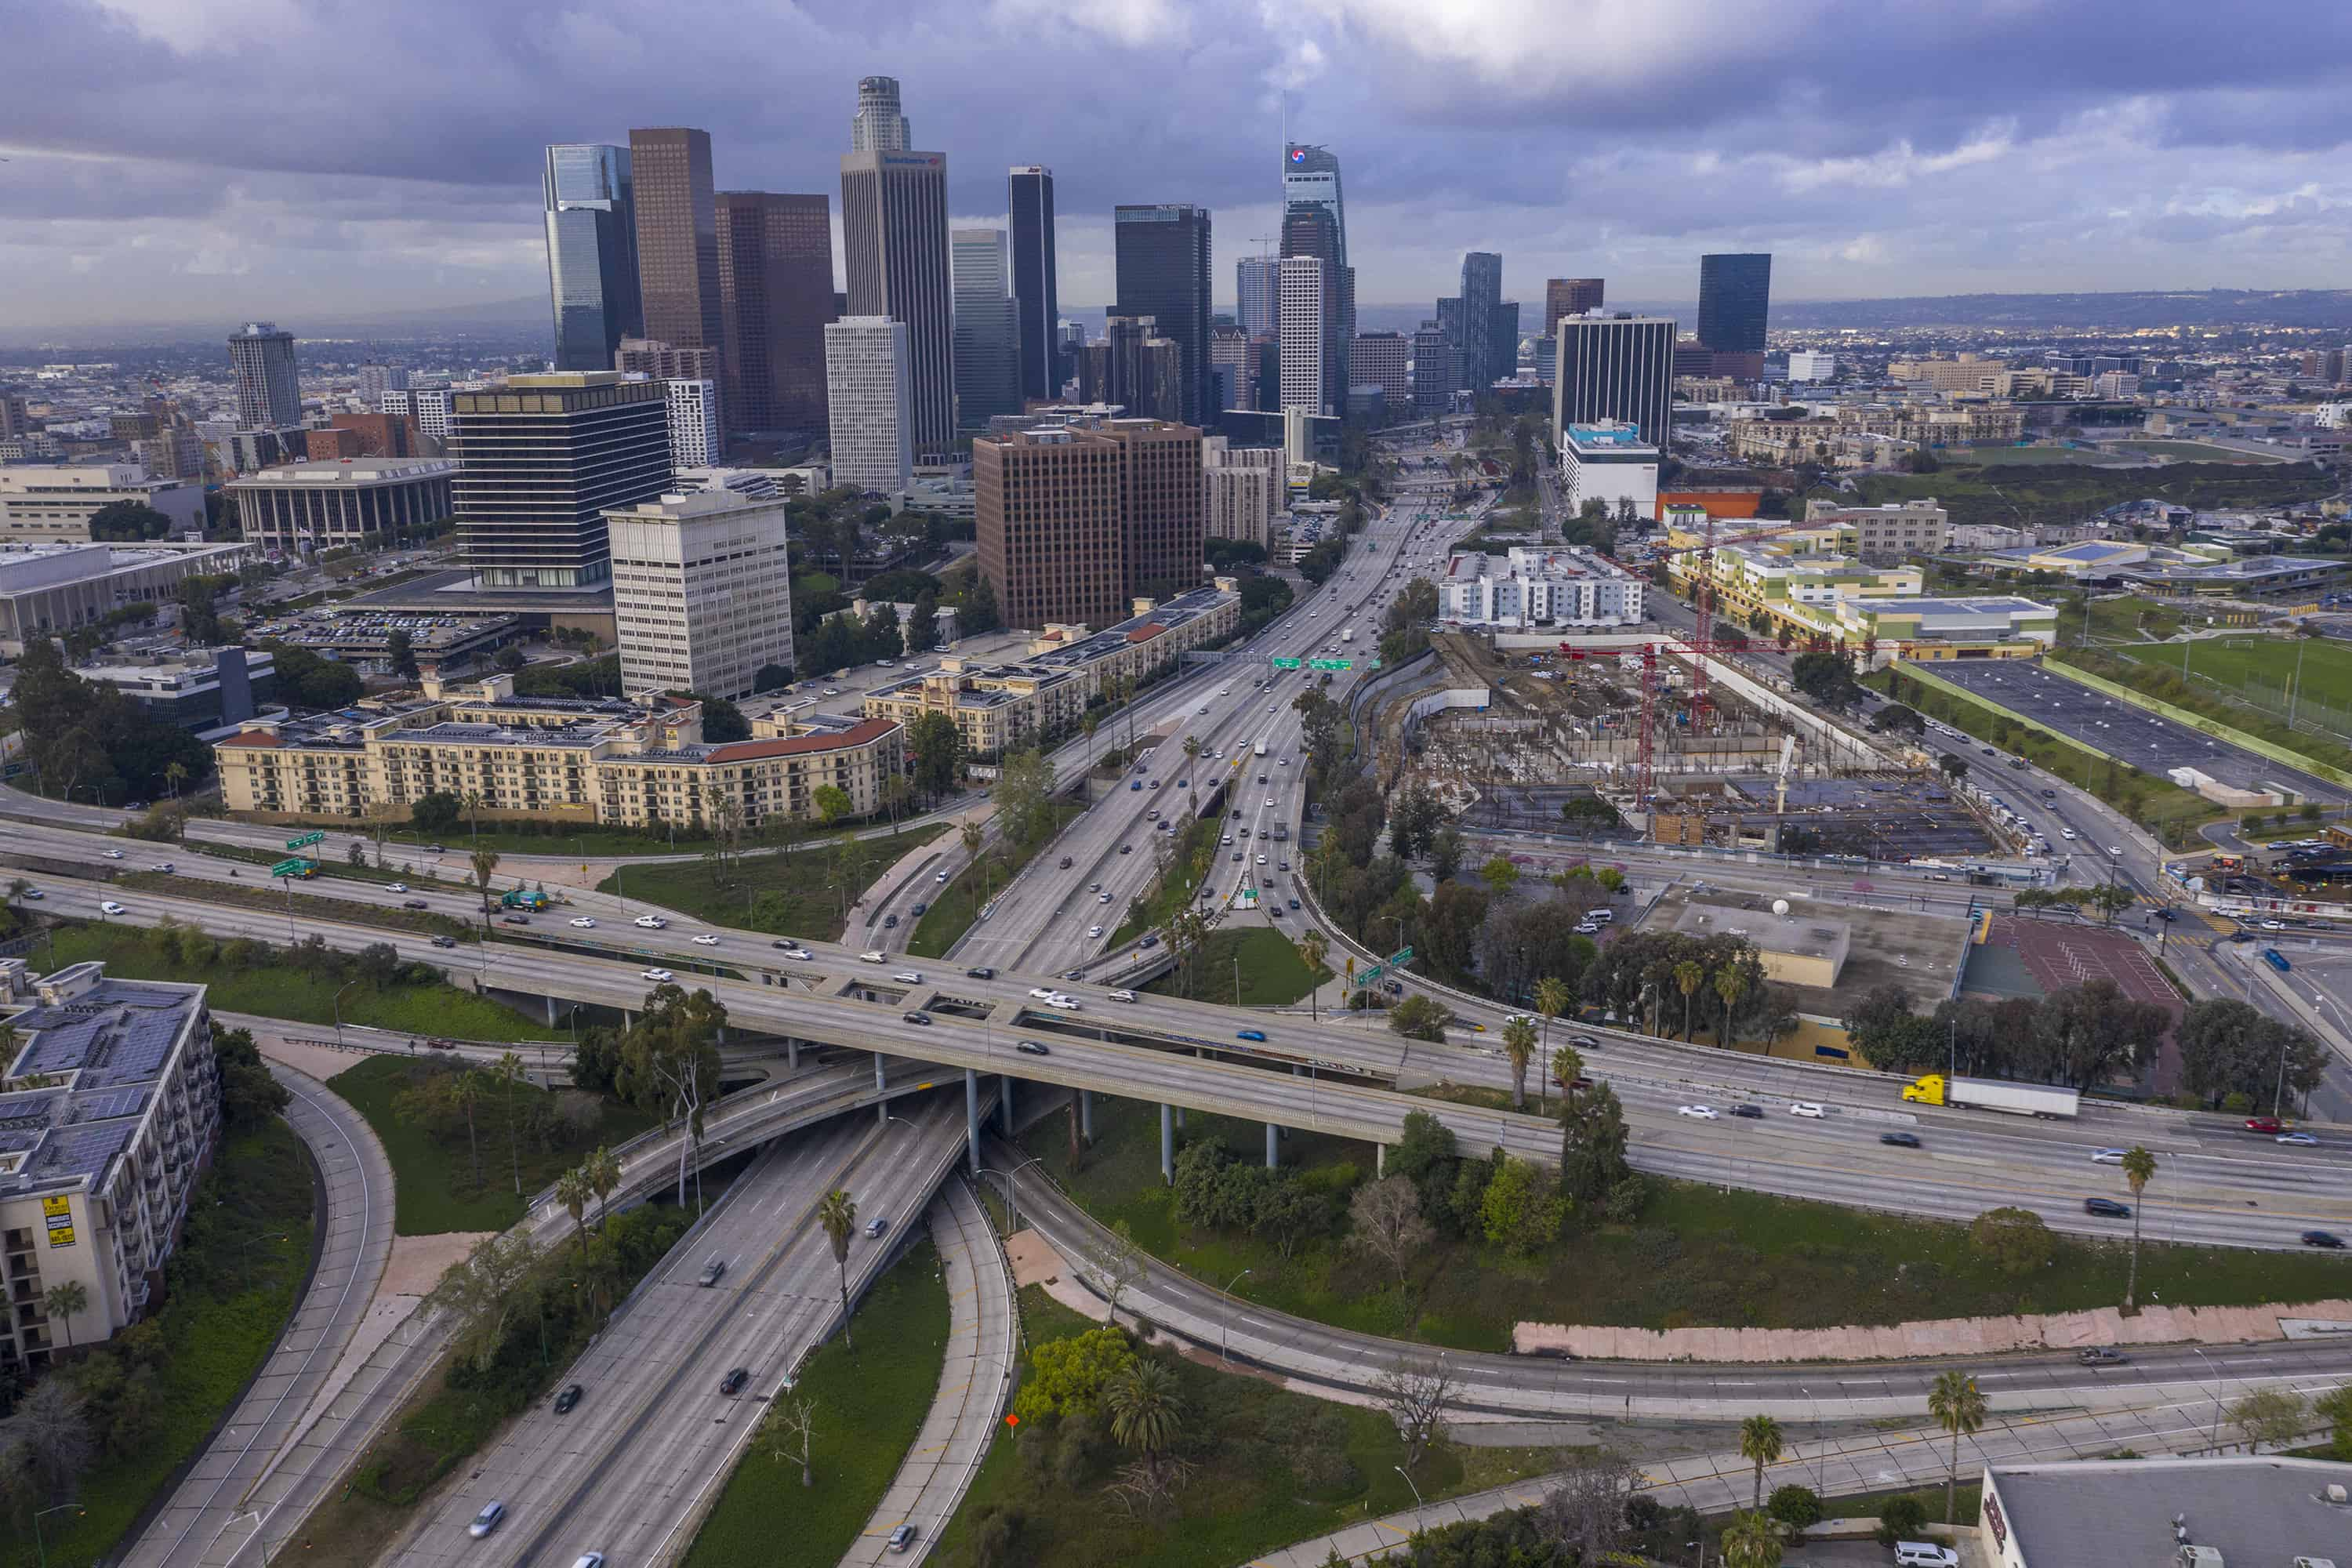 Los Angeles County's stay-at-home order would likely be extended until July as they countine to work on flattening the curve.